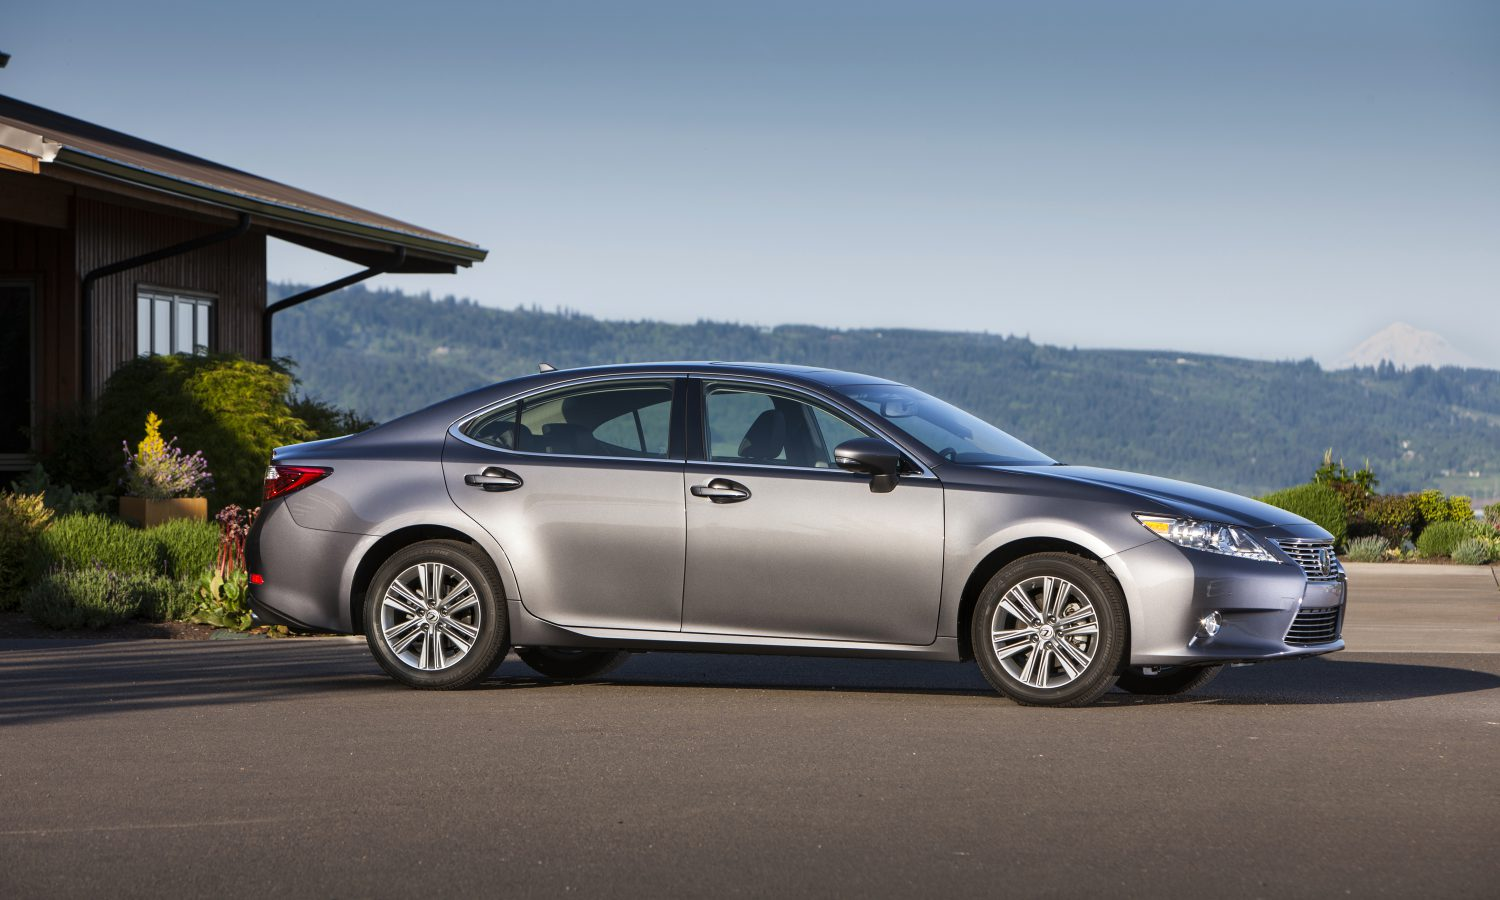 Lexus Named Most Trusted Luxury Brand by 2014 Kelley Blue Book Brand Image Awards